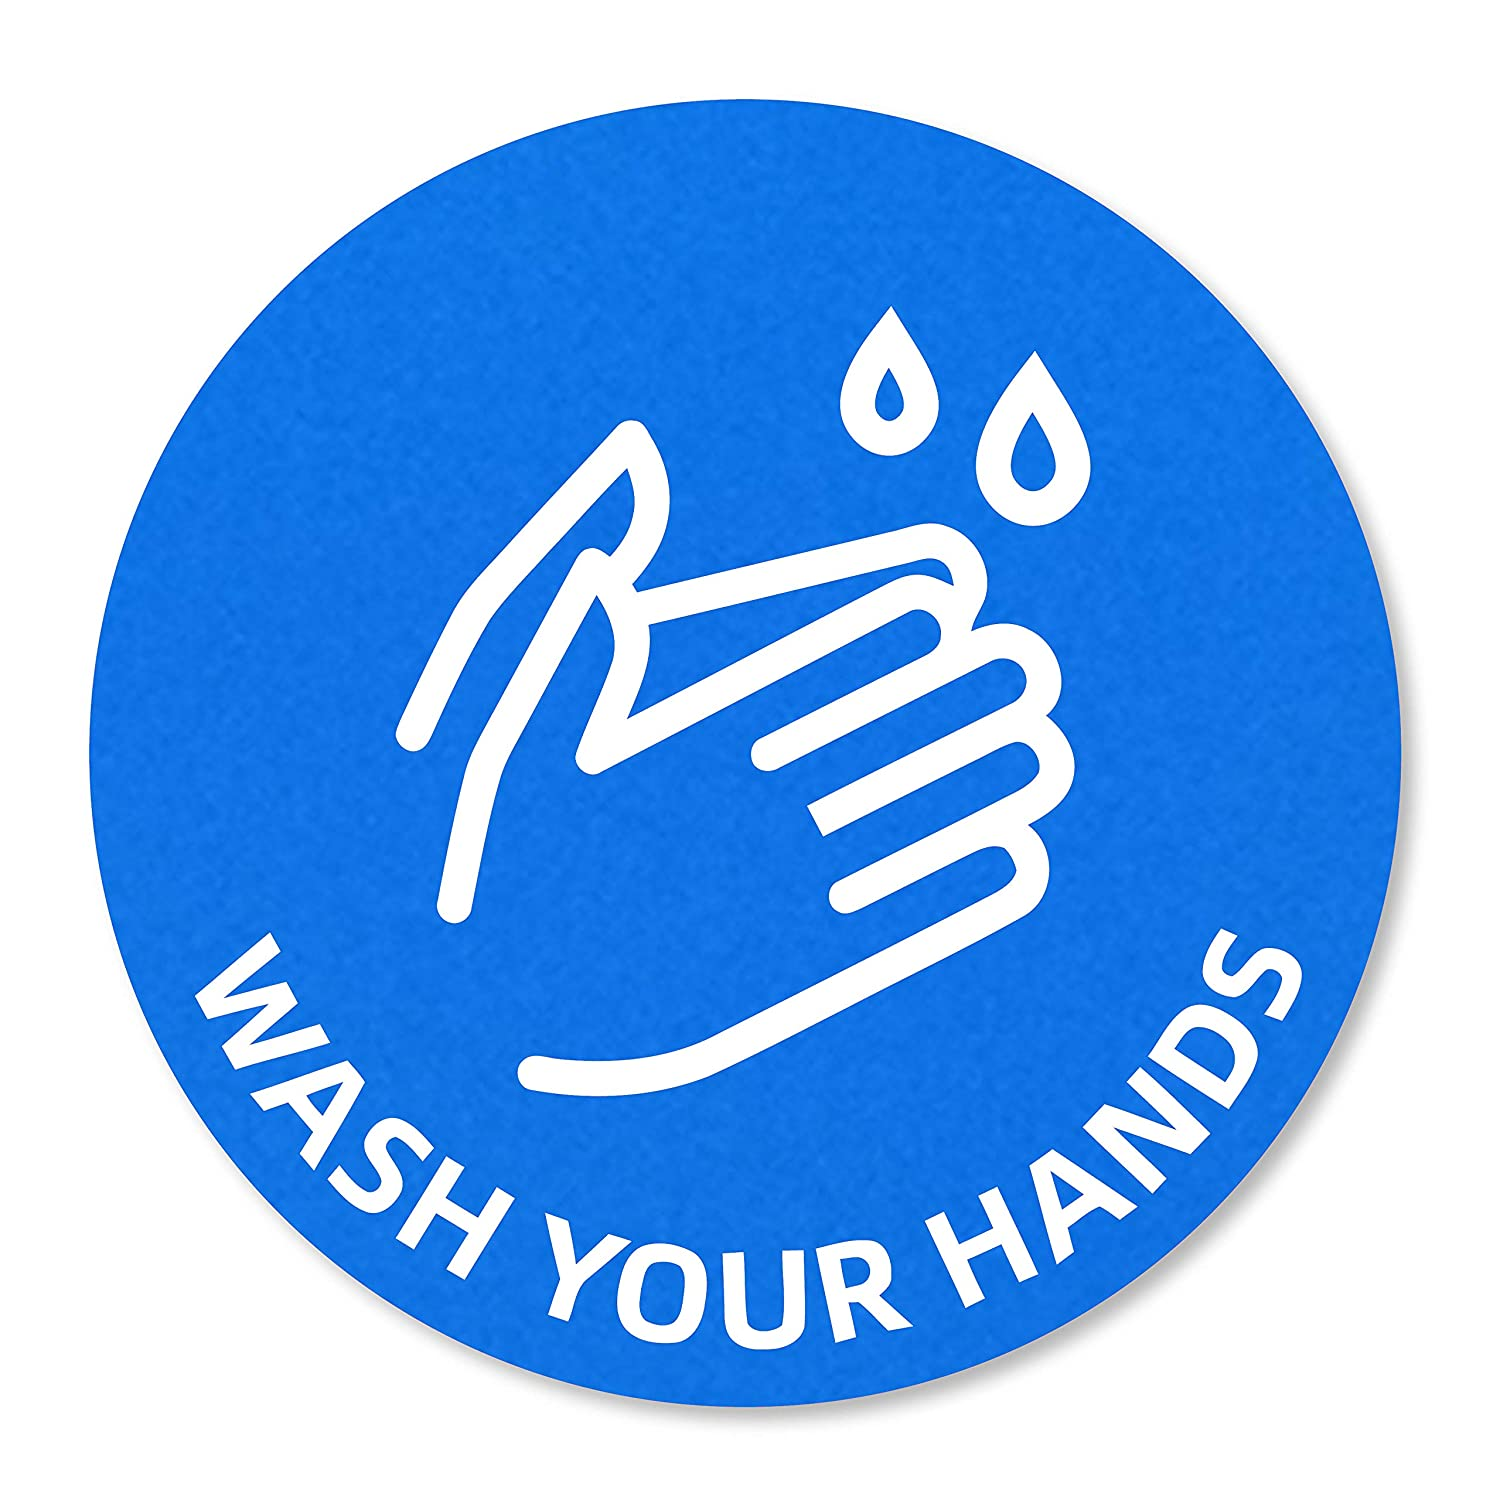 Wash Your Hands Sign Stickers, 10 Pack 6x6 inches Signage, Waterproof, Grease Proof, Fade Resistant, Easy Application, Strong Stick Stickers